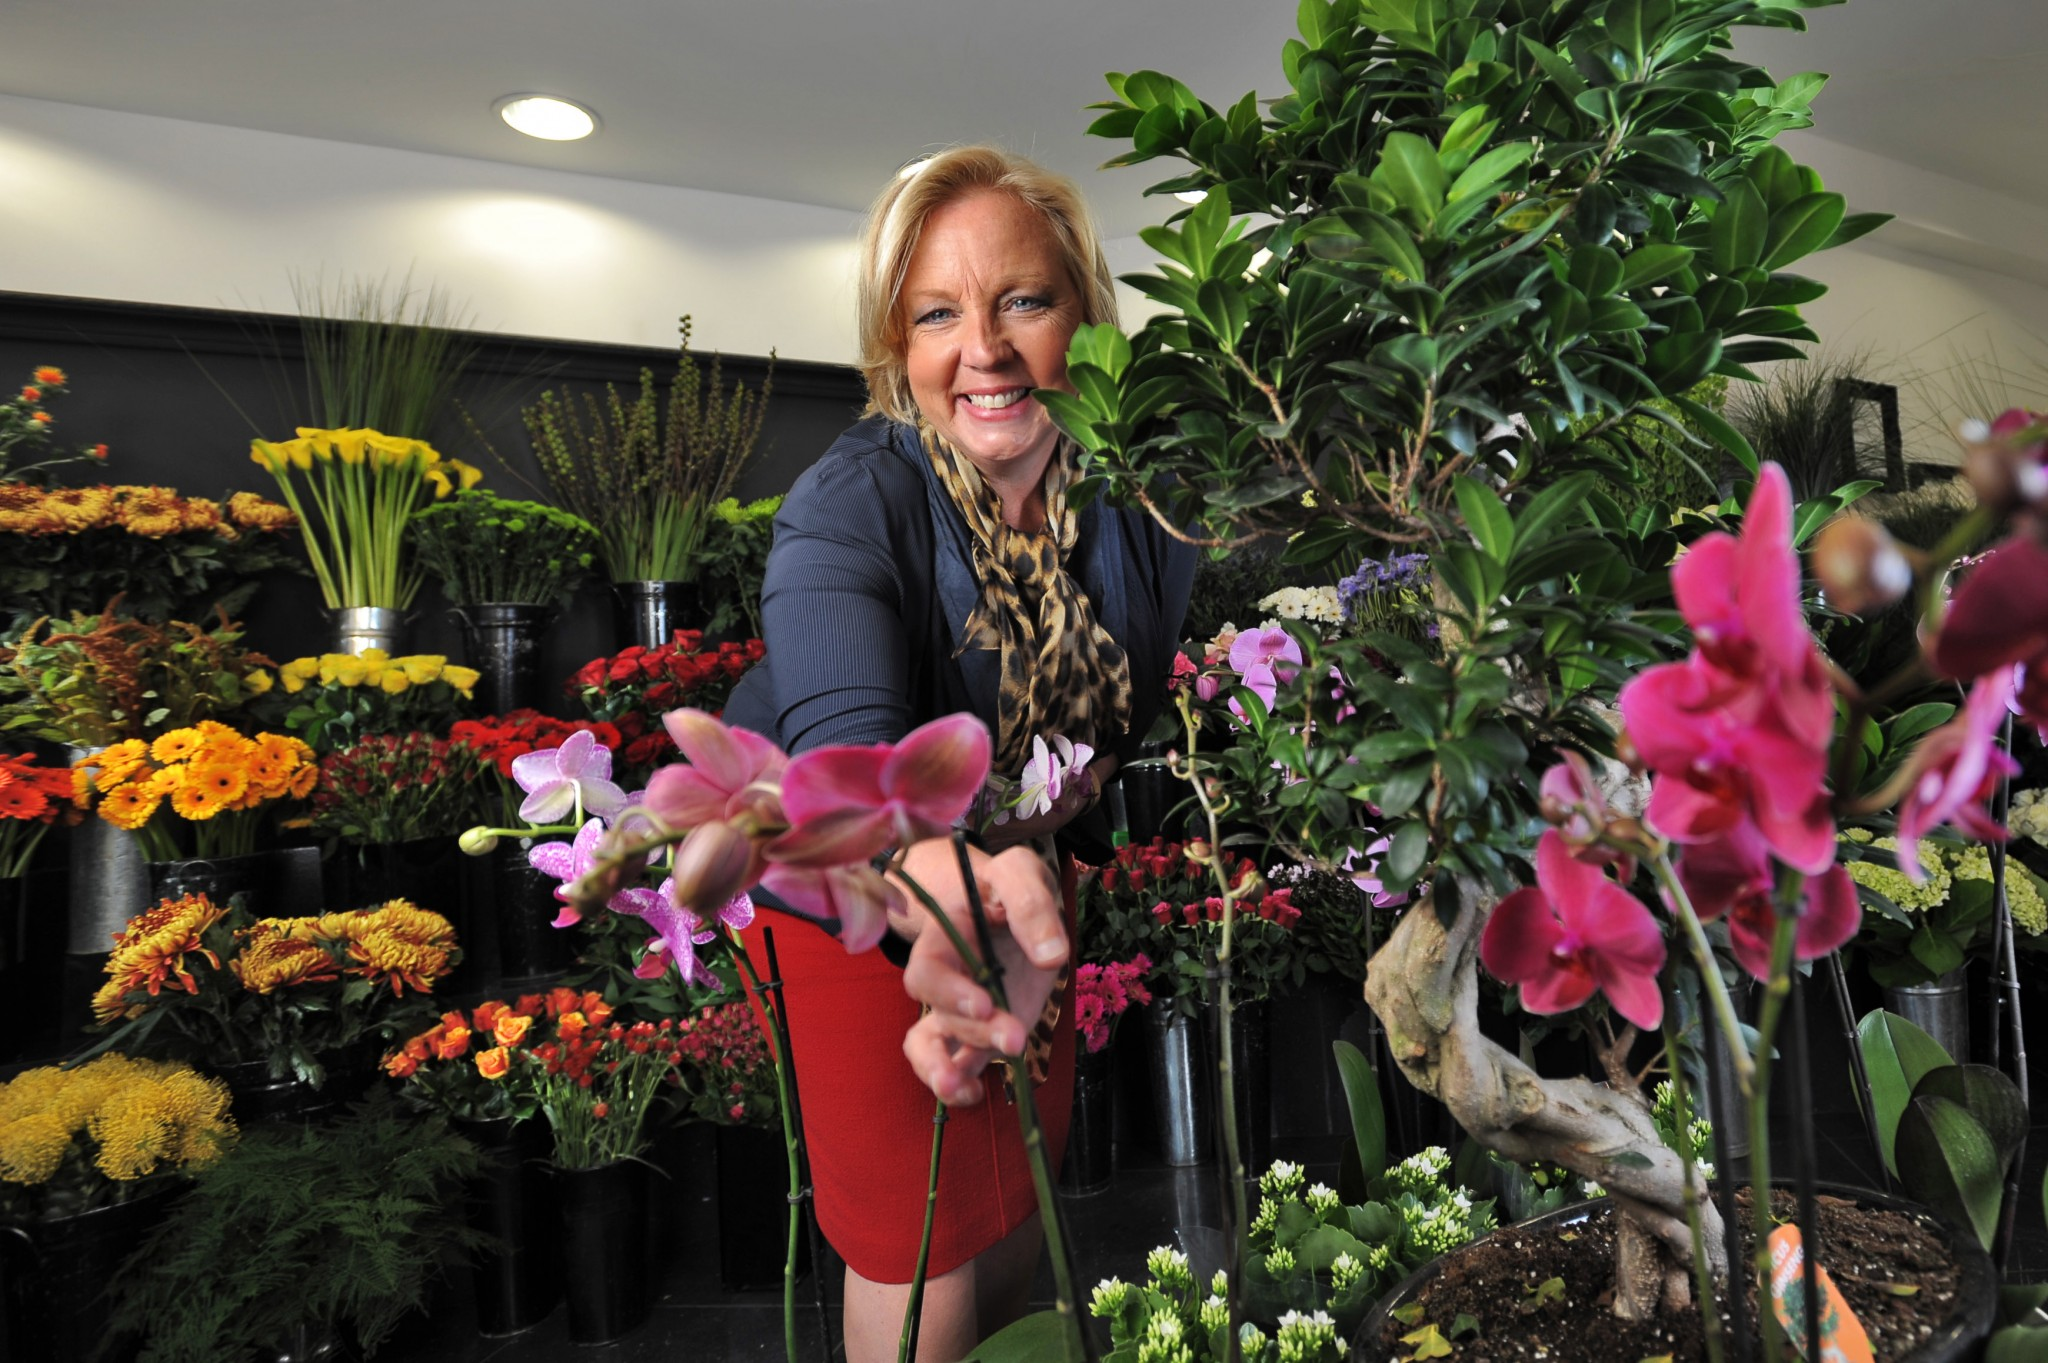 Deborah fronts campaign to promote local businesses